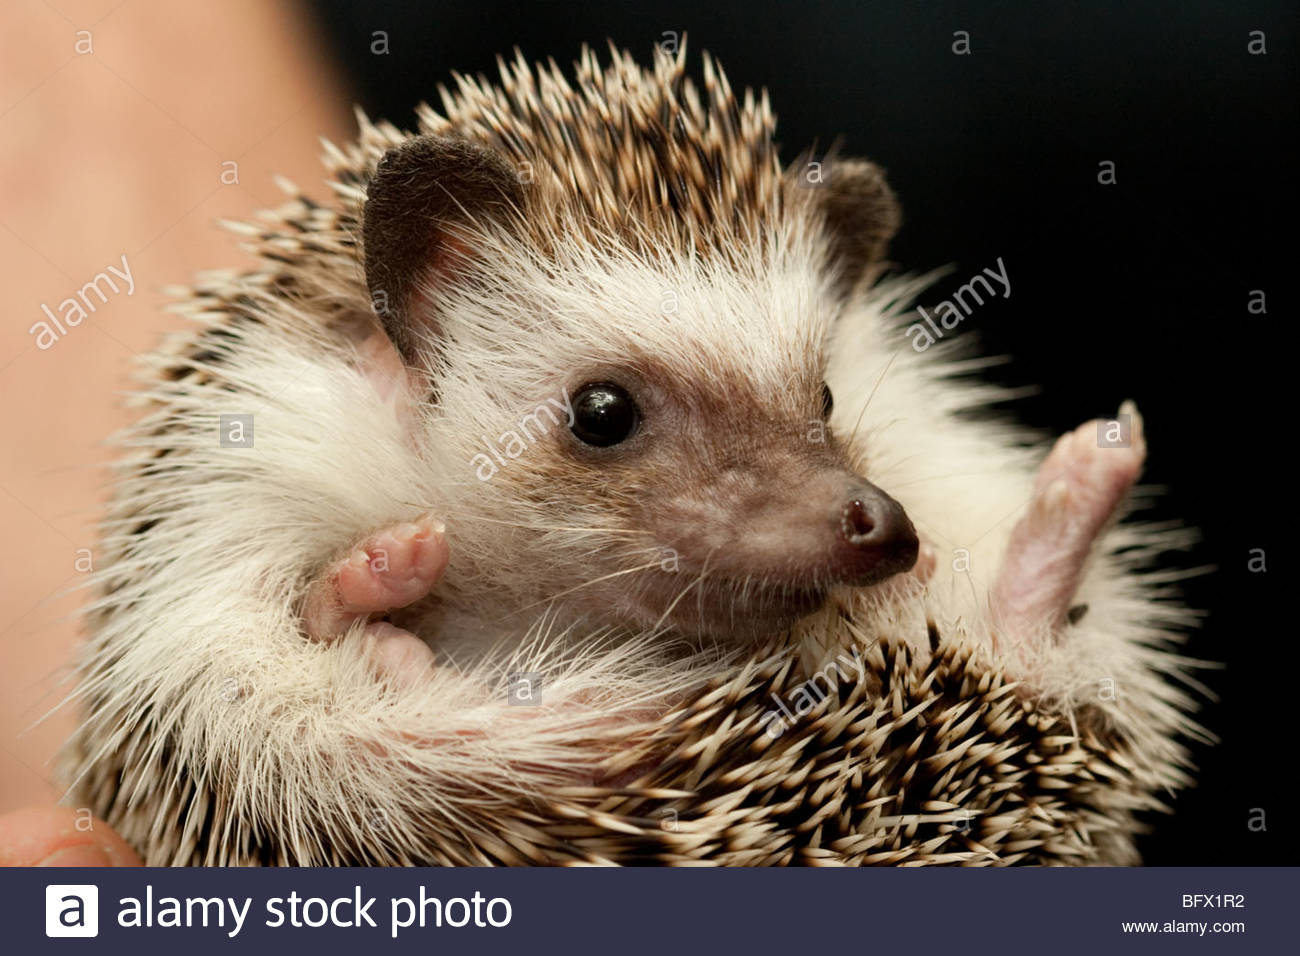 Hedgehog vet inspection Stock Photo